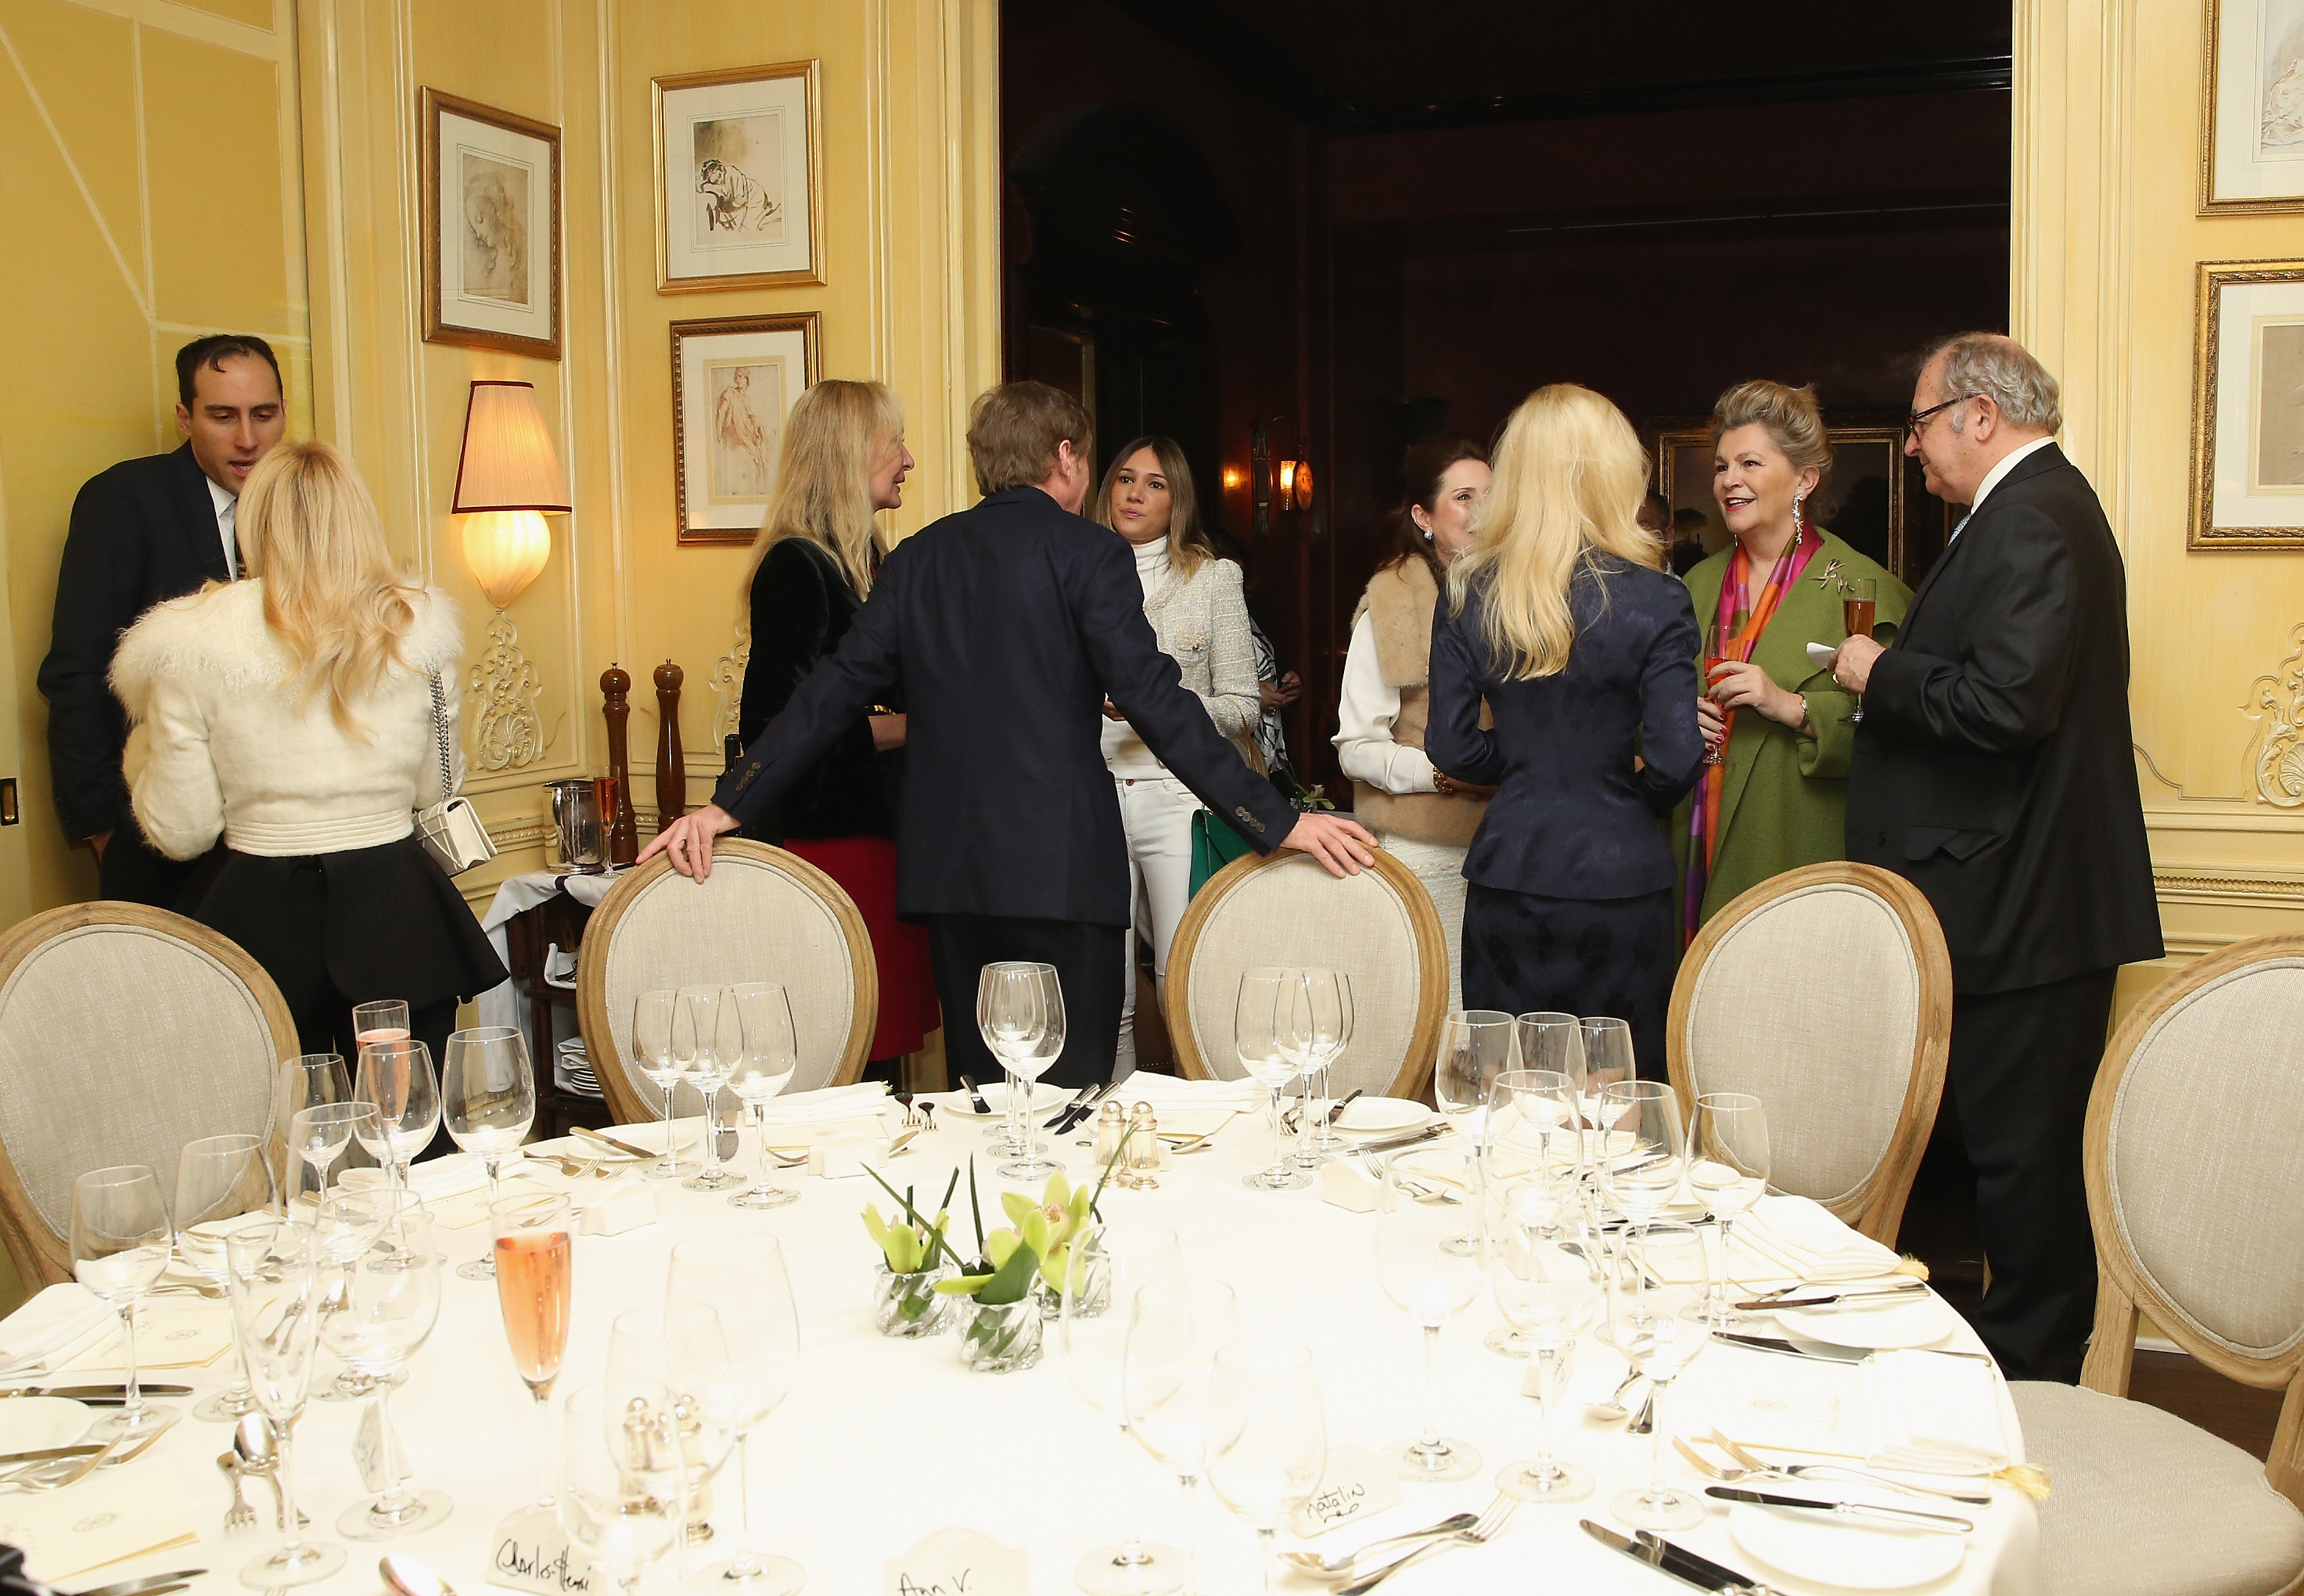 NEW YORK, NY - JANUARY 08: General view of atmopshere at New York Socialite Michelle-Marie Heinemann Hosts Luncheon For Prince Charles Henri Lobkowicz At Plaza Athenee on January 8, 2016 in New York City. (Photo by Robin Marchant/Getty Images for Old Fashioned Mom Magazine)